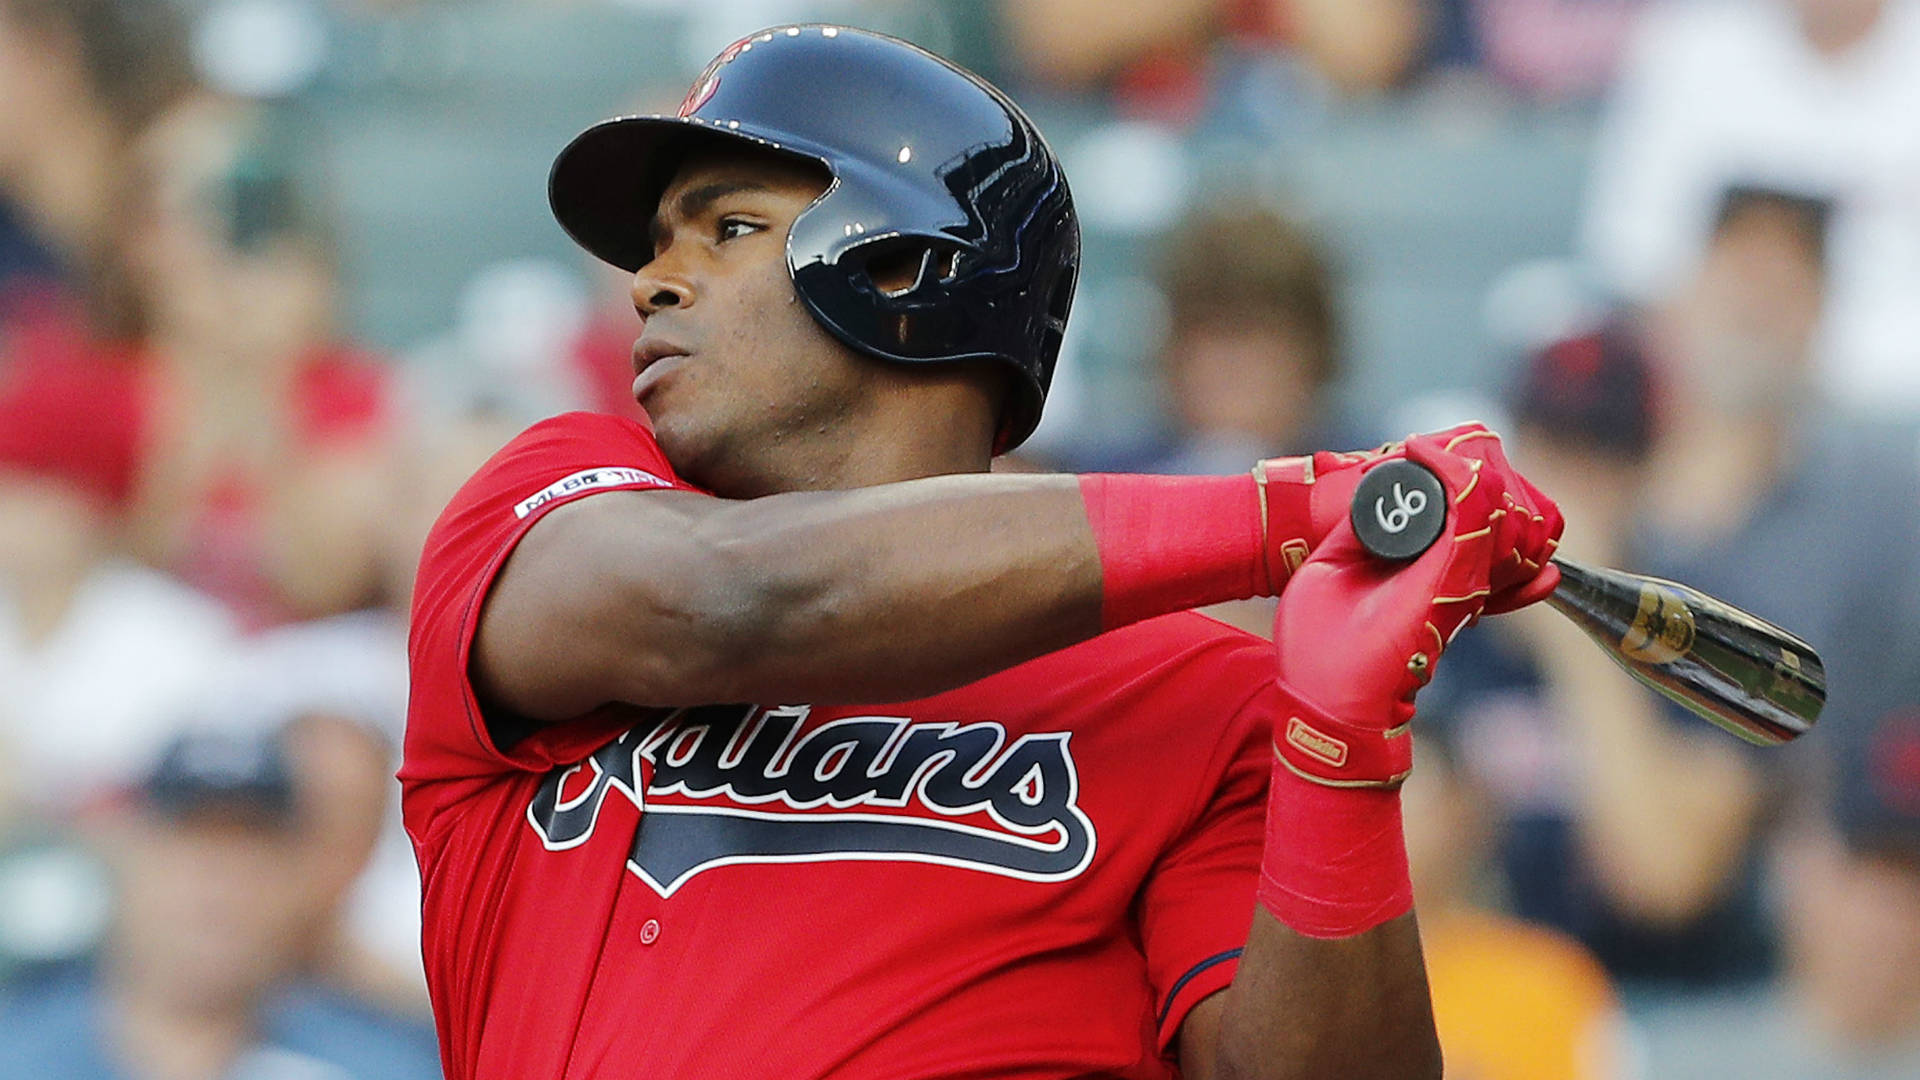 A native of Cuba, Puig, 28, defected from Cuba in 2012 after several failed attempts.